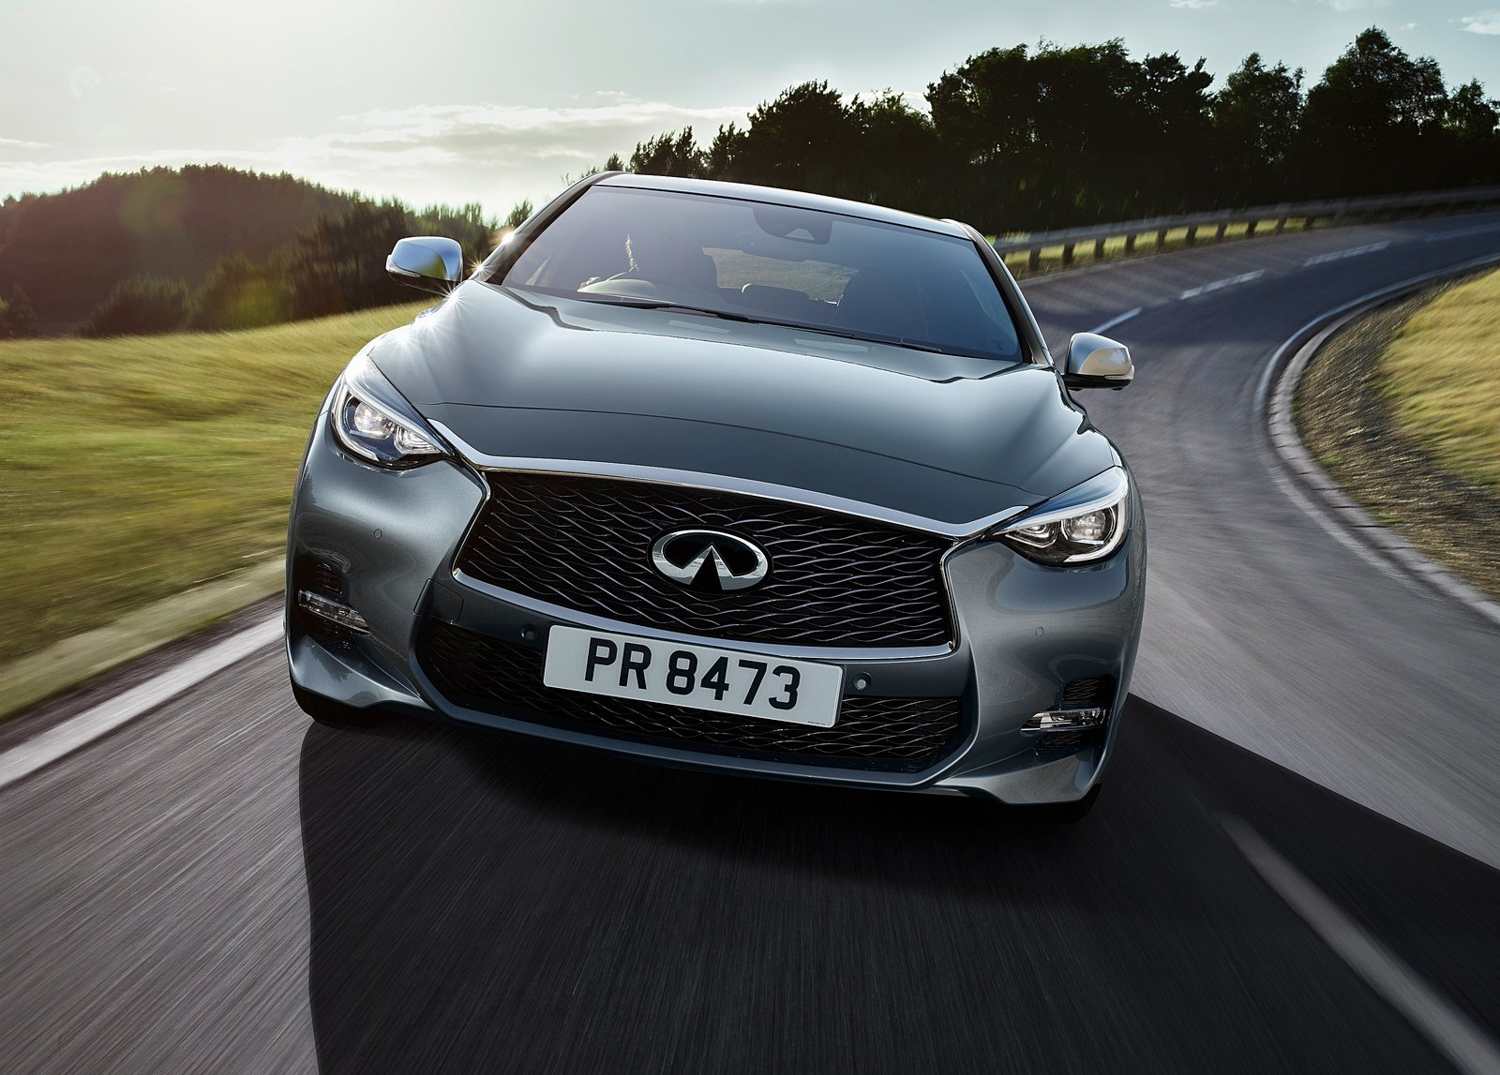 2017 Infinity QX30 front end on road